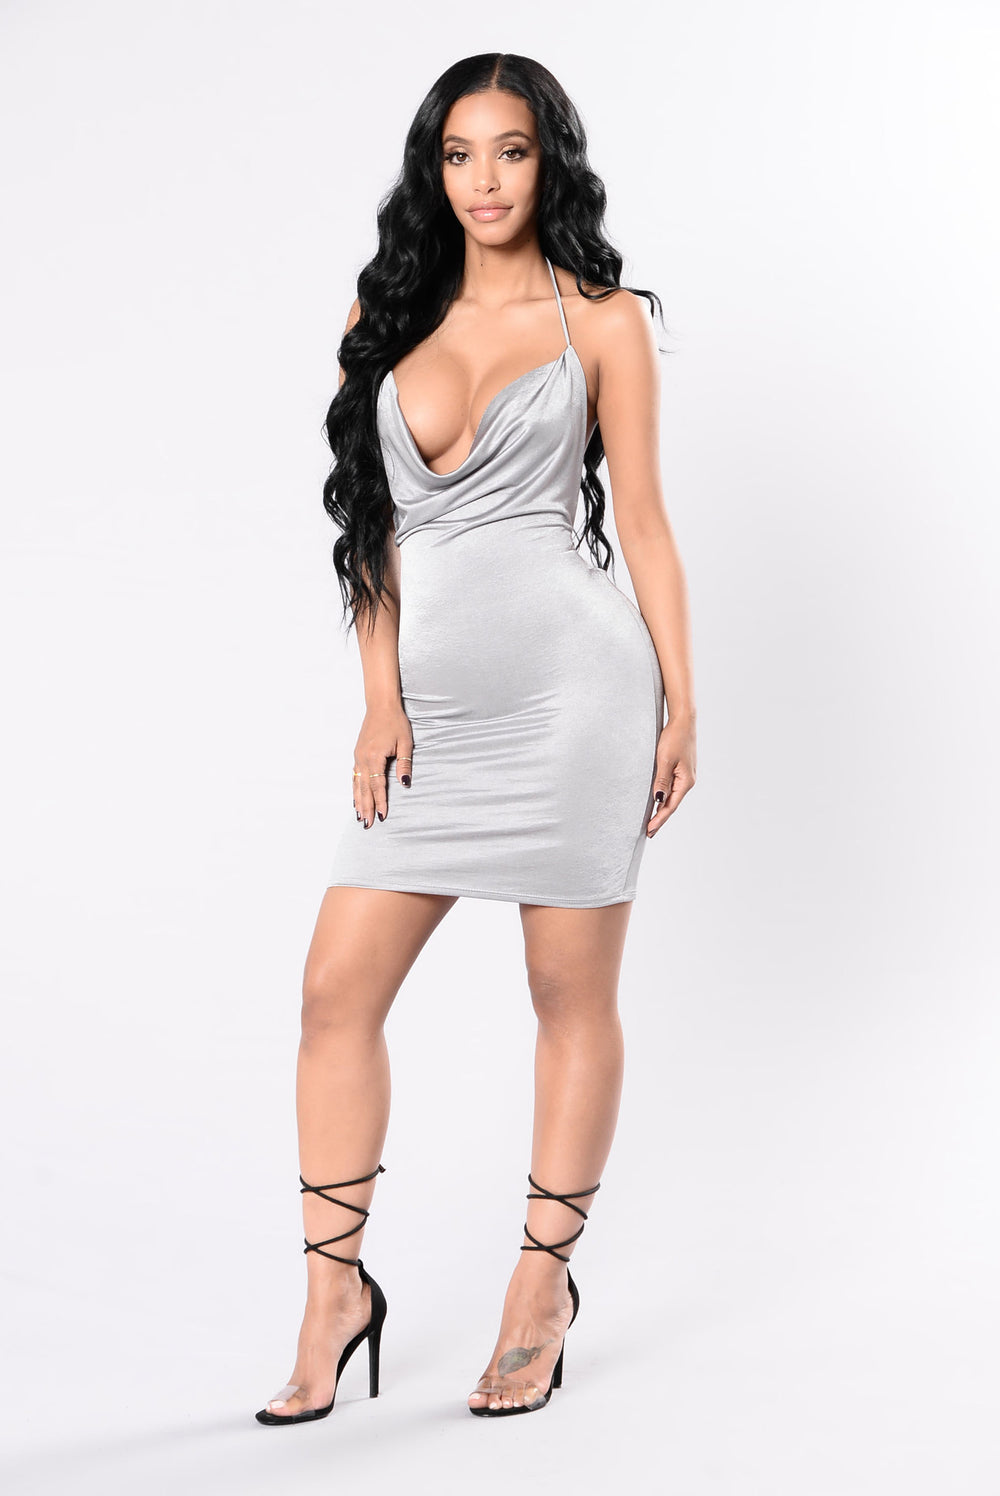 Your Drape Goals Dress - Silver